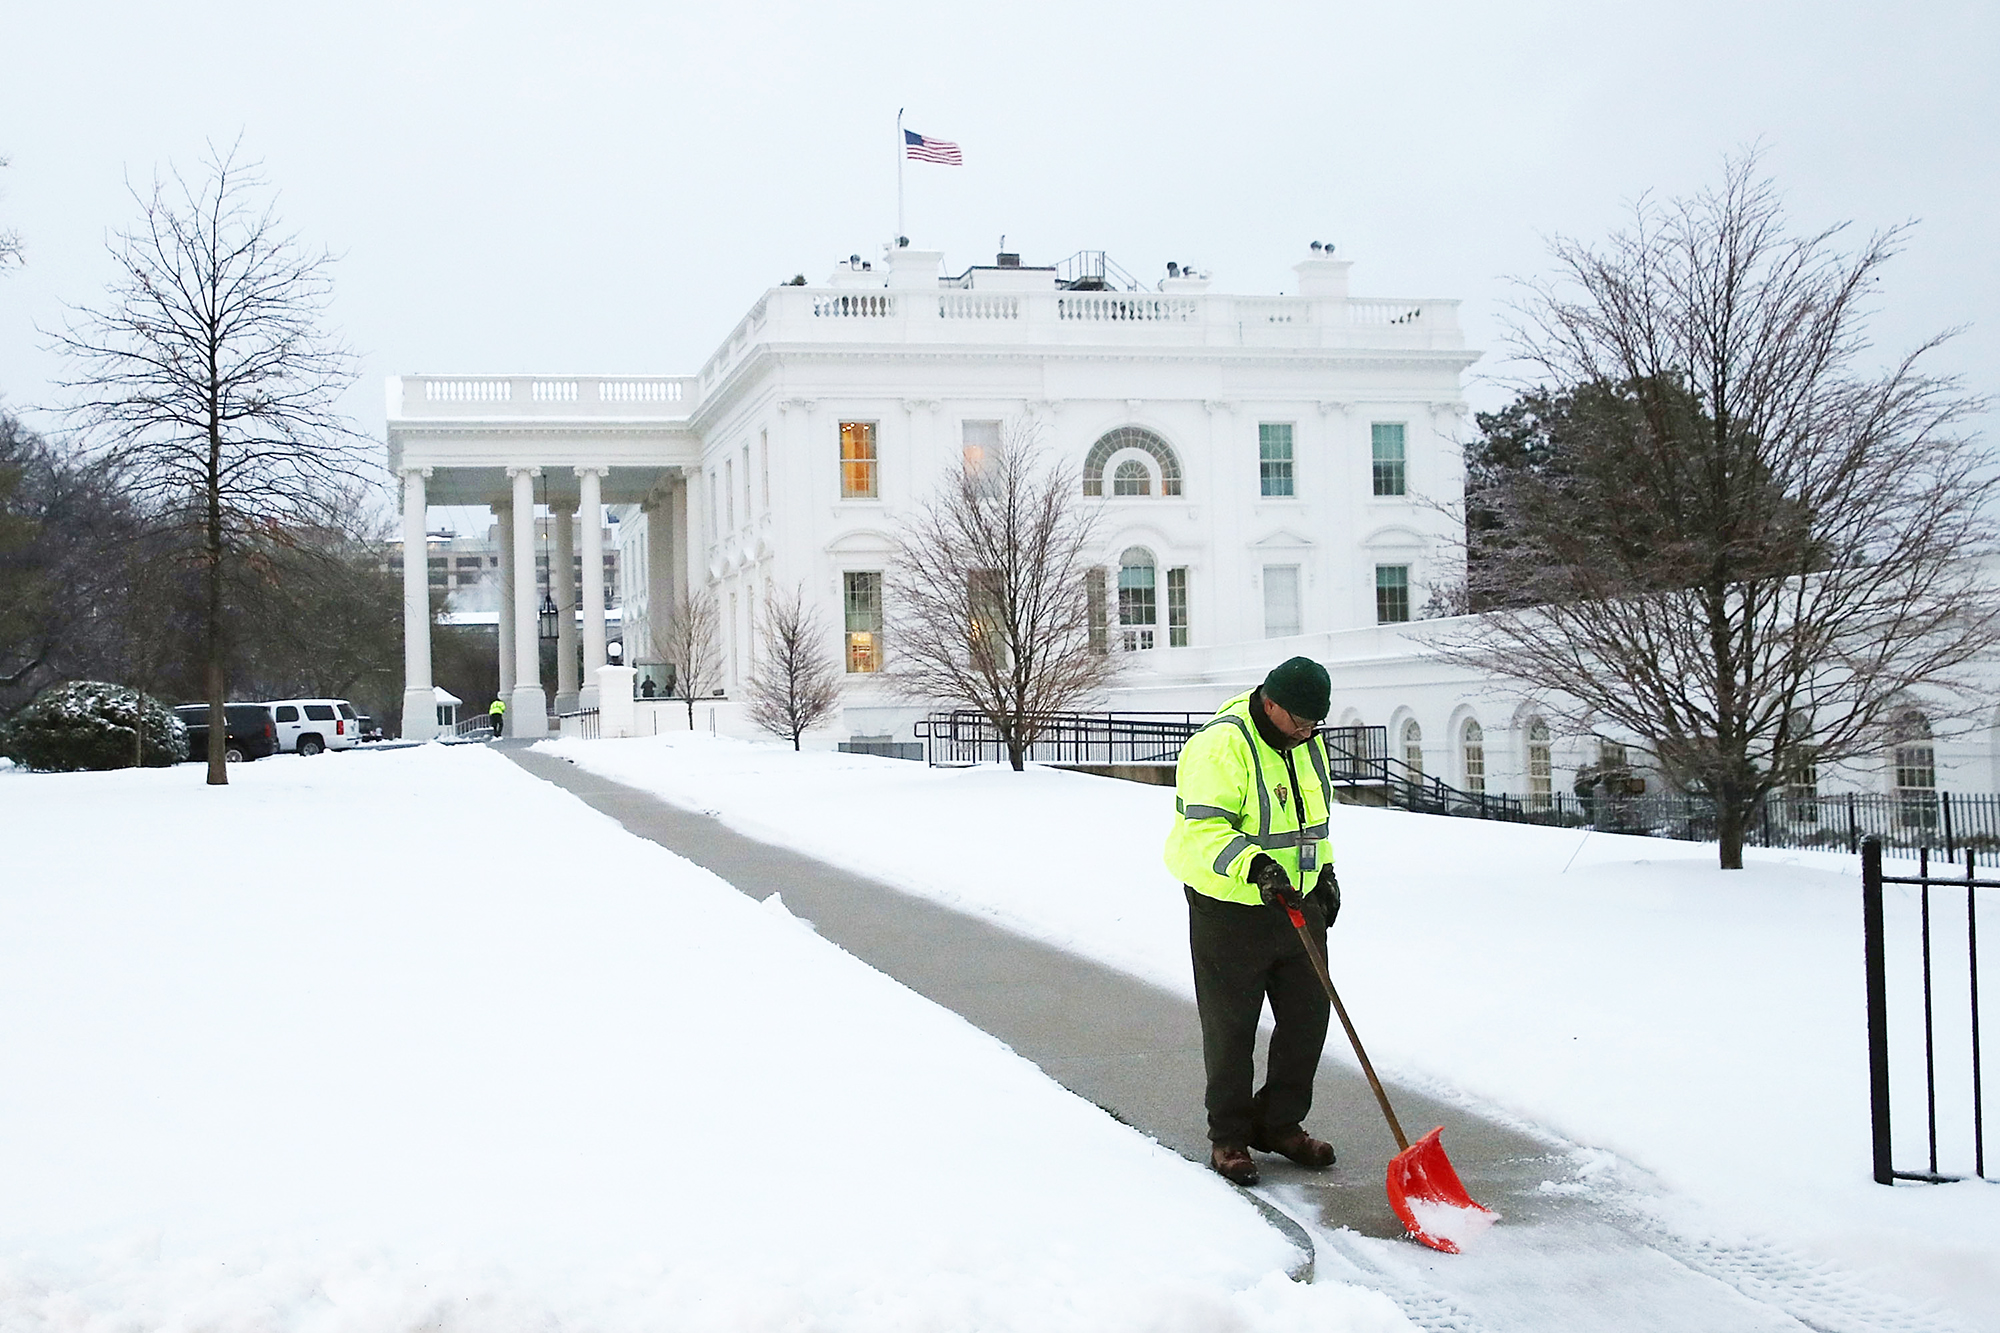 A U.S. Park Service worker shovels snow off of the sidewalk at the White House in Washington, D.C., on March 14, 2017.